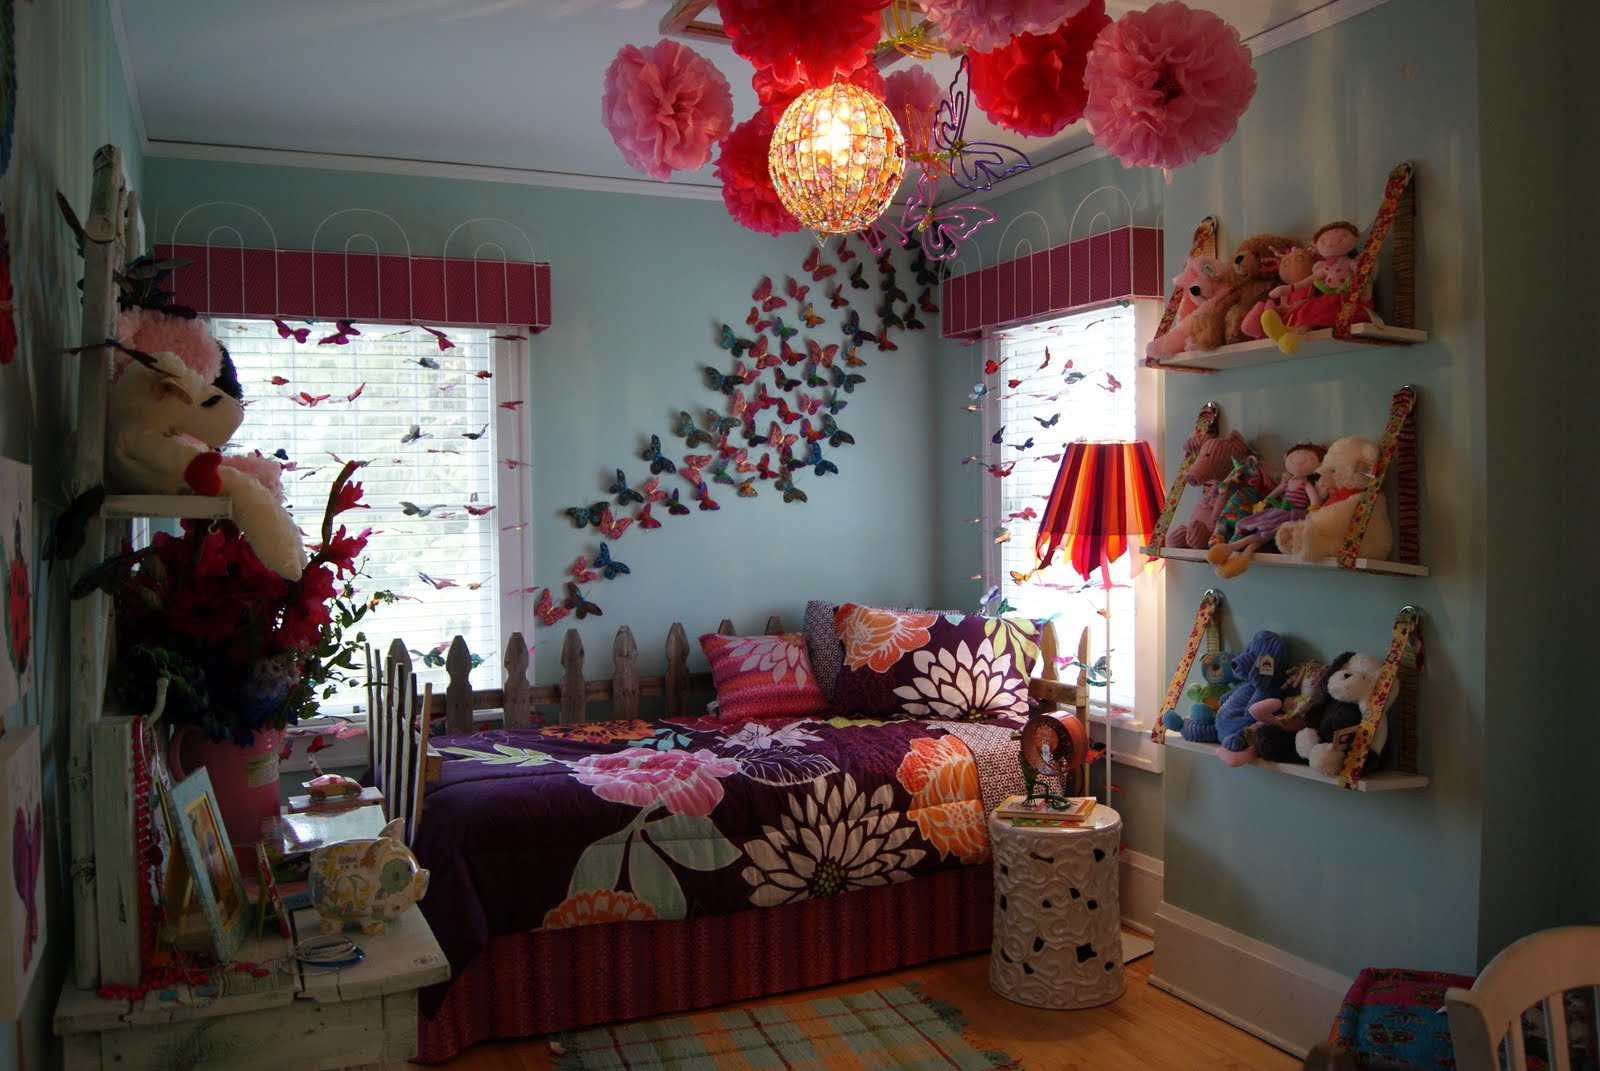 Butterfly themed bedroom in budget interior designing ideas for Butterfly themed bedroom ideas